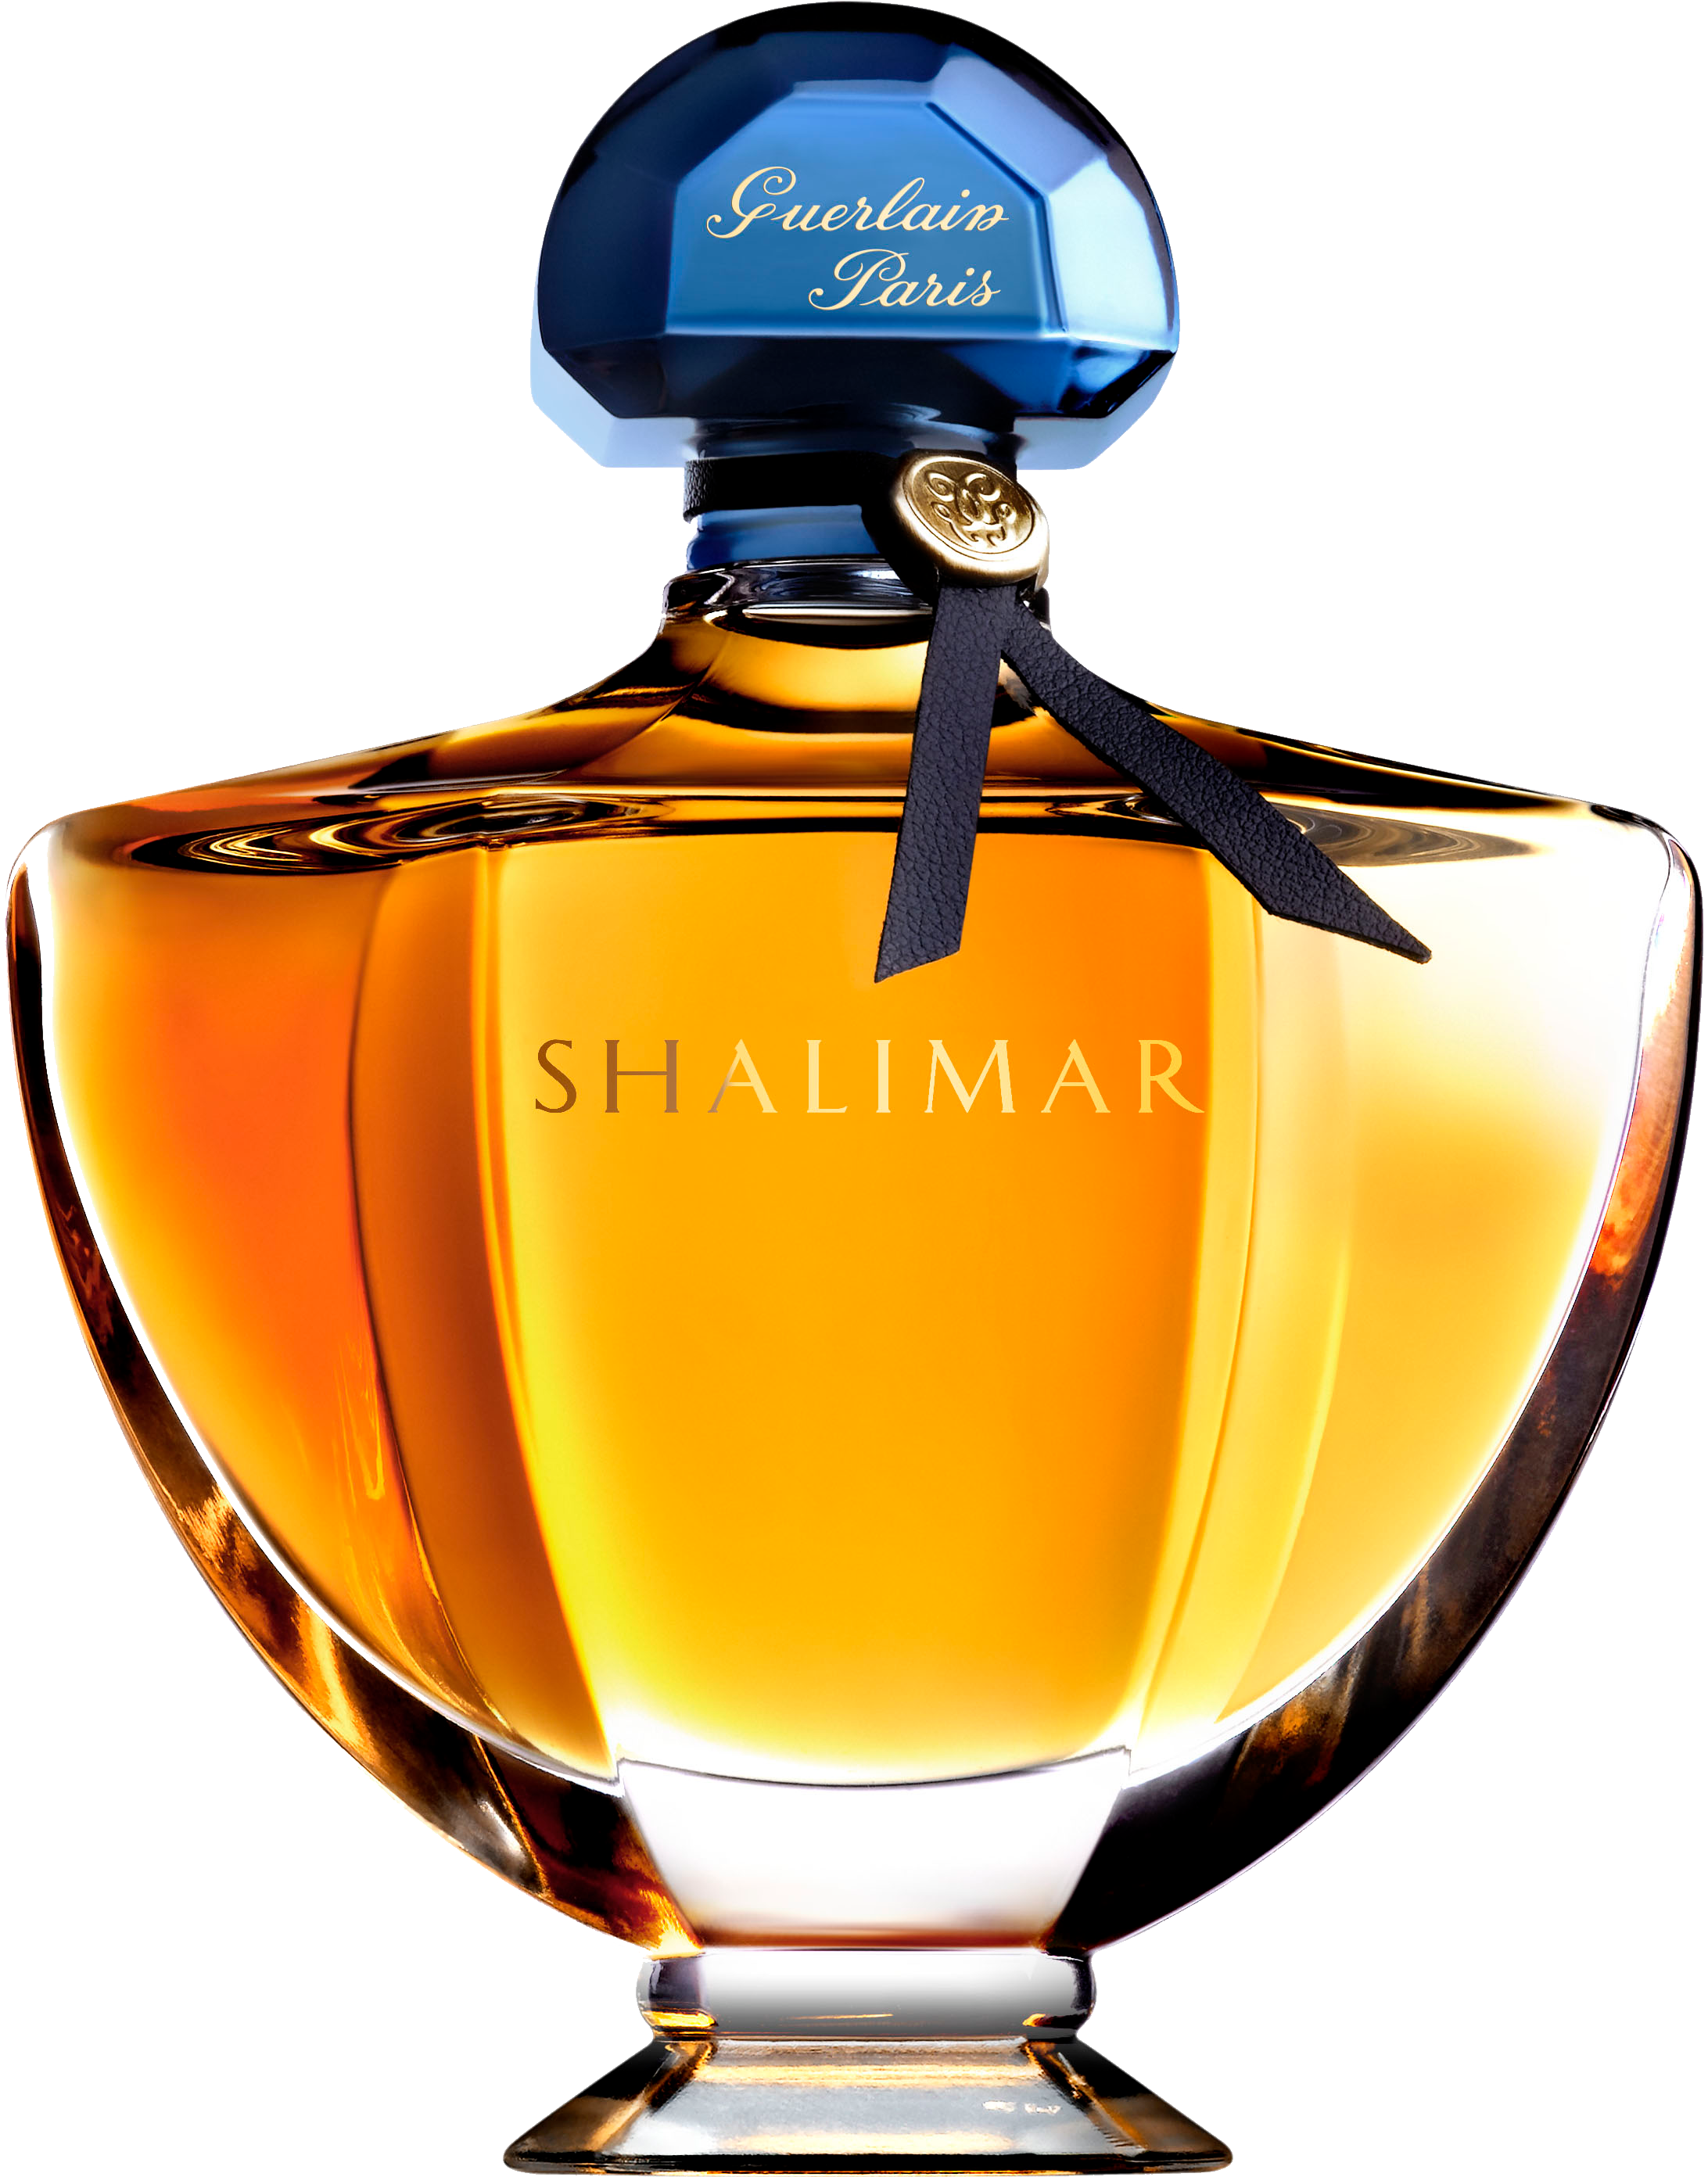 Perfume clipart perfume chanel. Png transparent free images